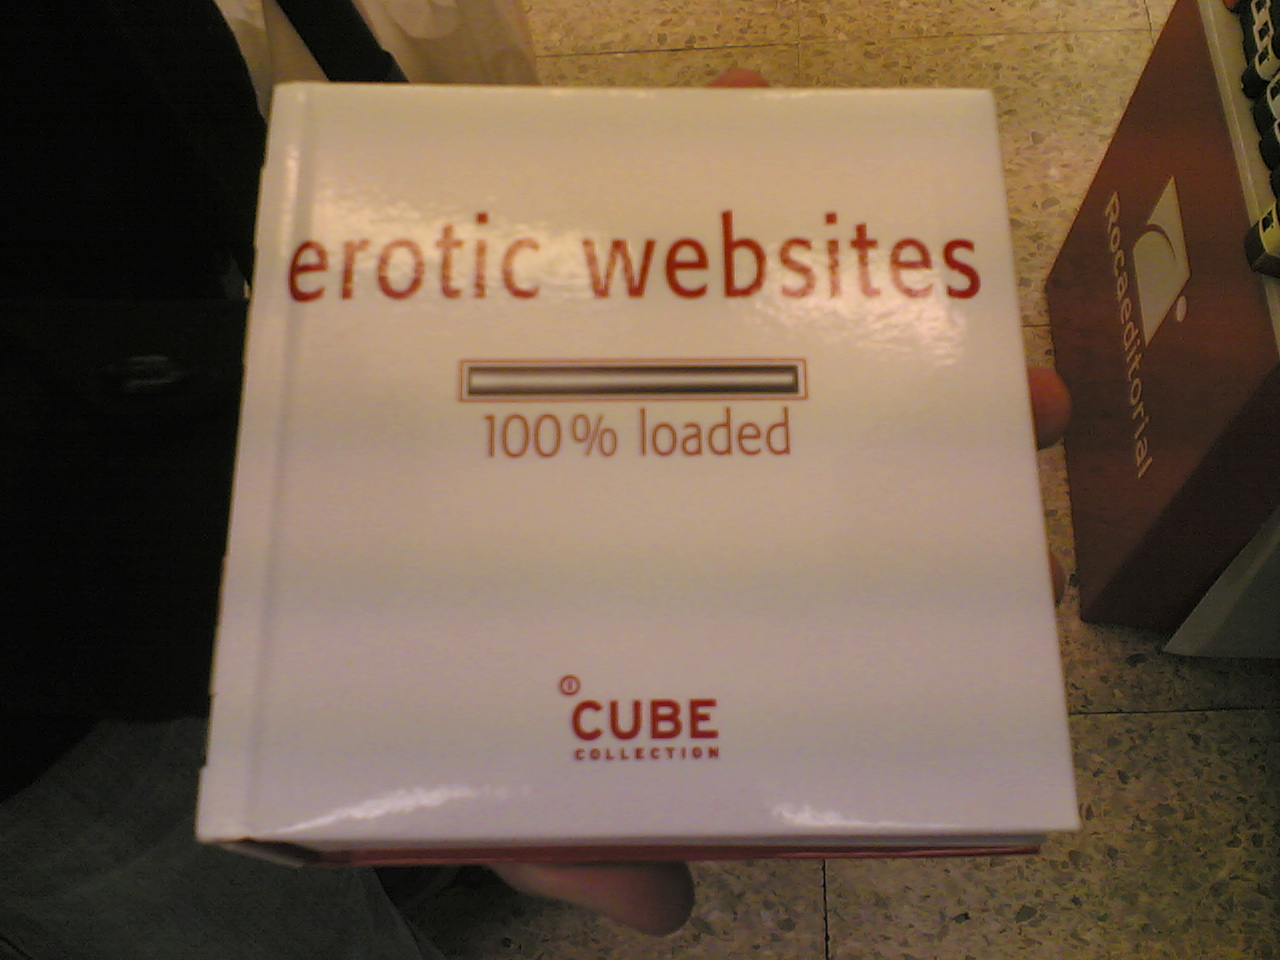 erotic websites.jpg